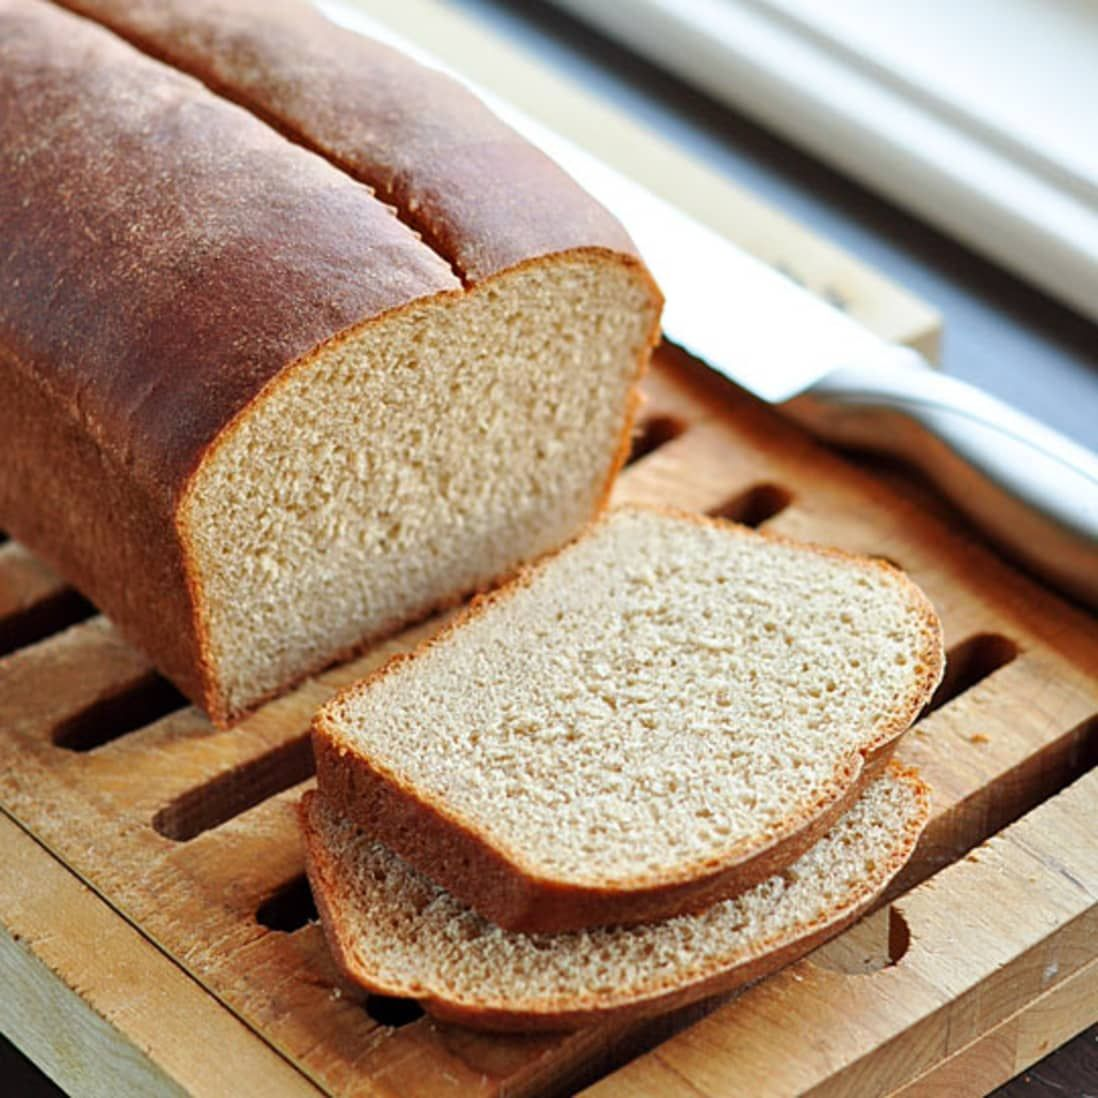 How To Make Whole Wheat Sandwich Bread